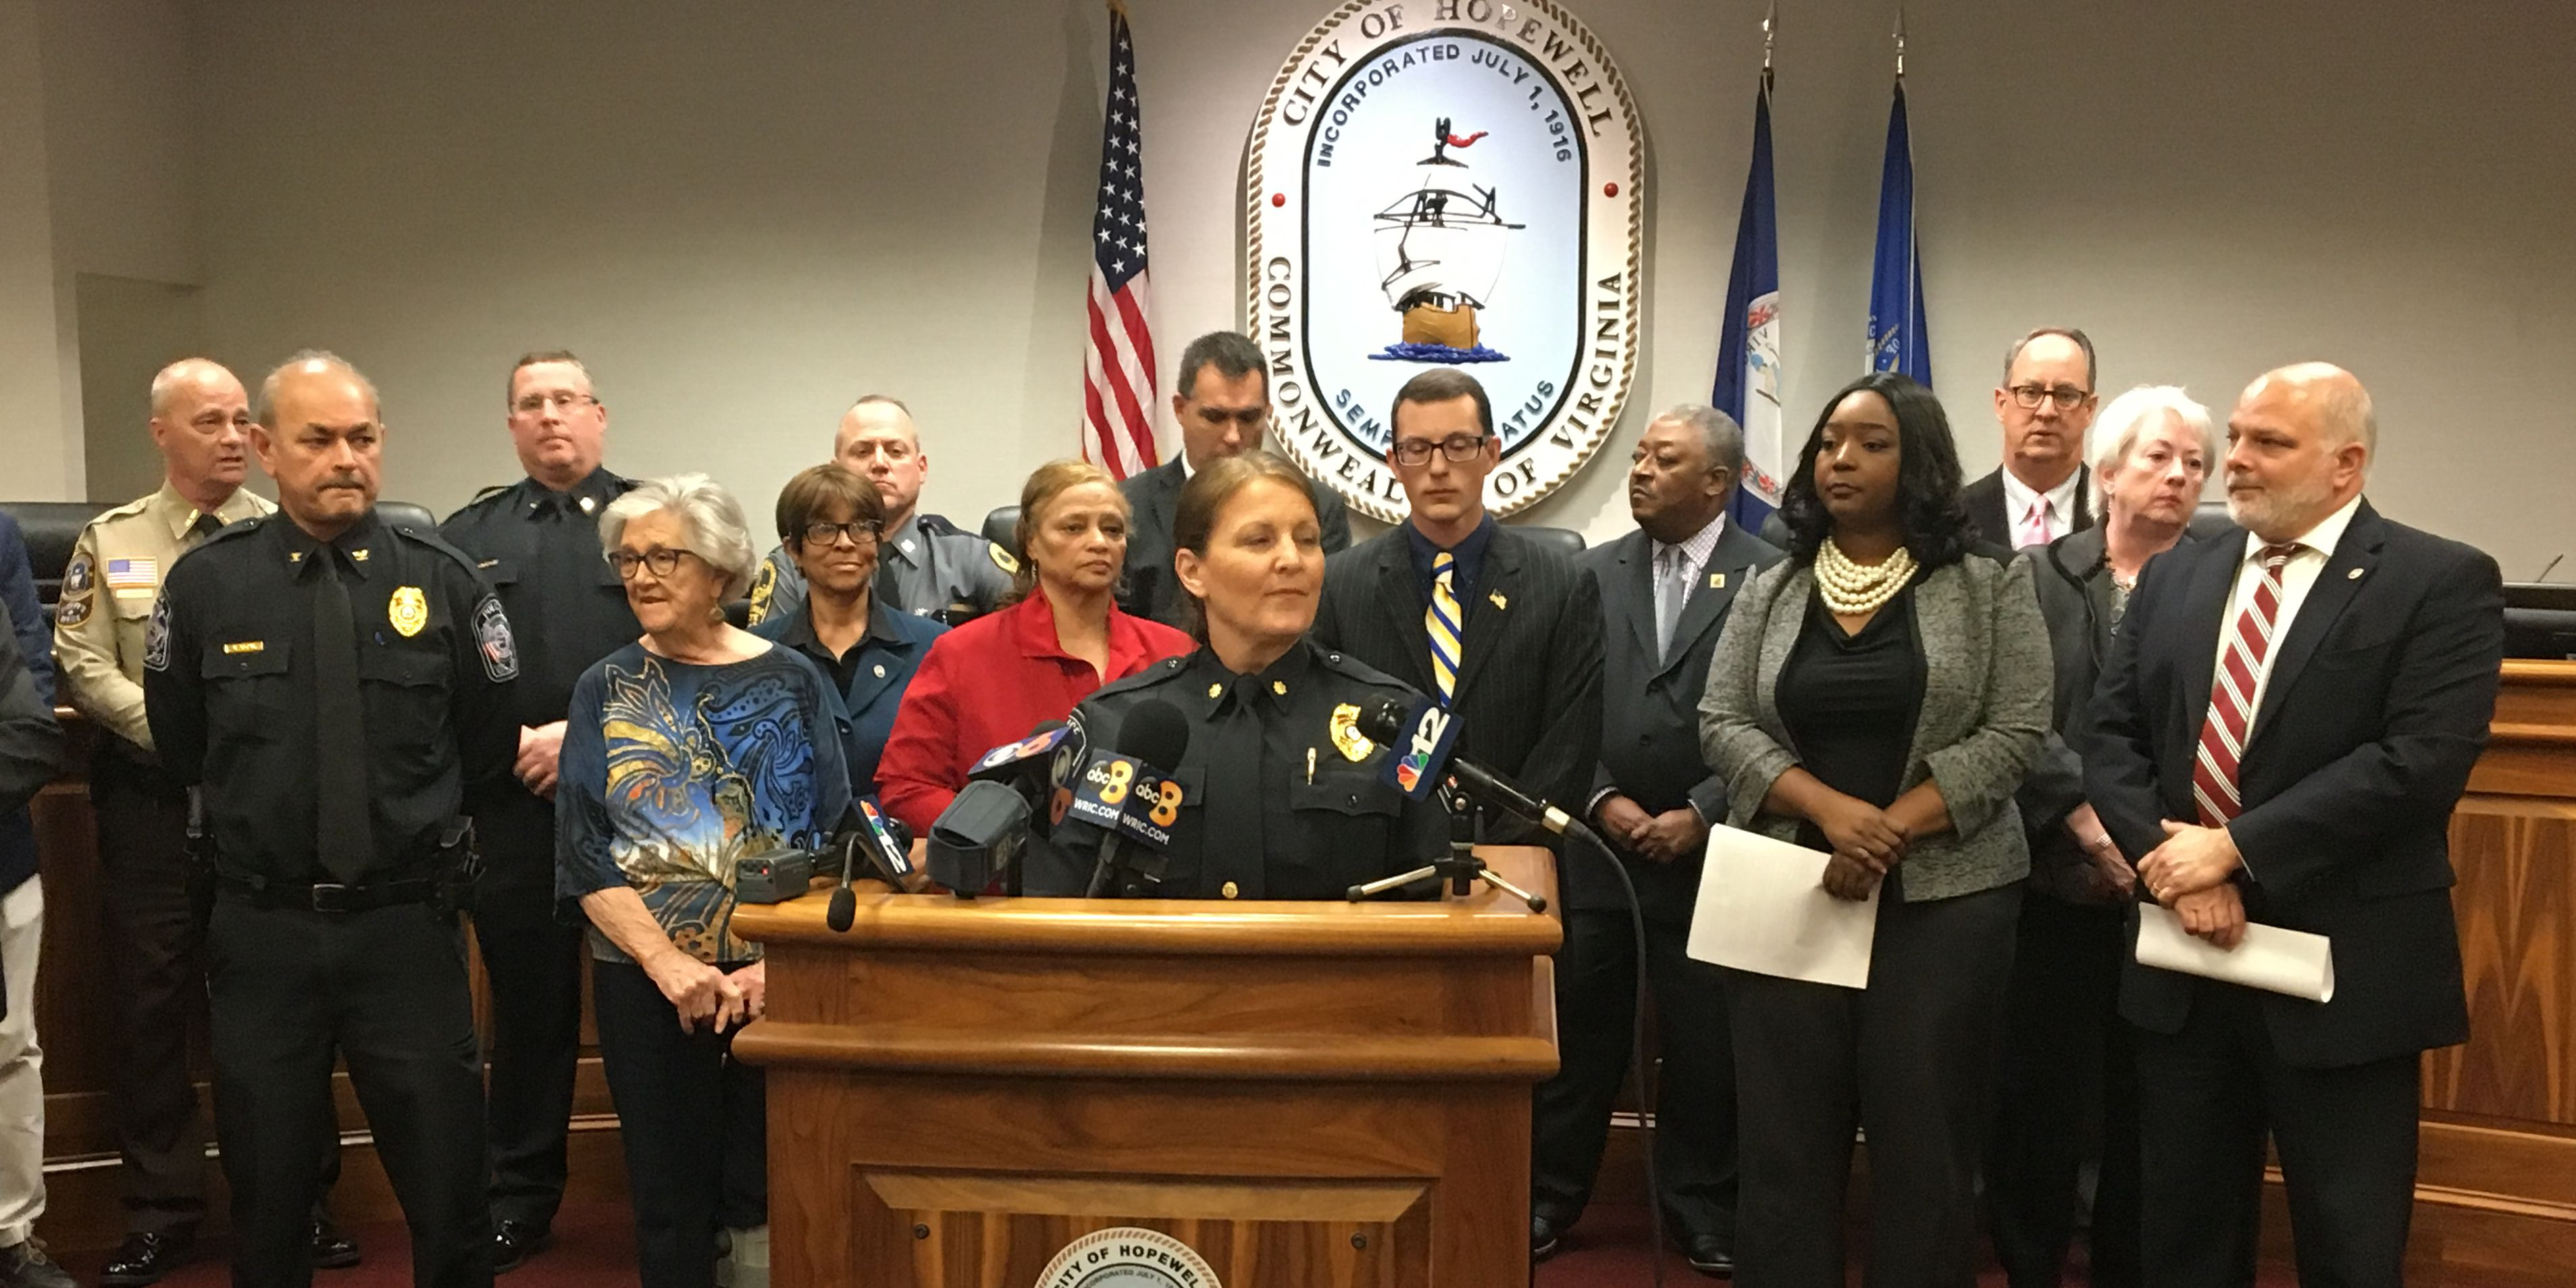 City leaders address citizens' concerns of violence in Hopewell